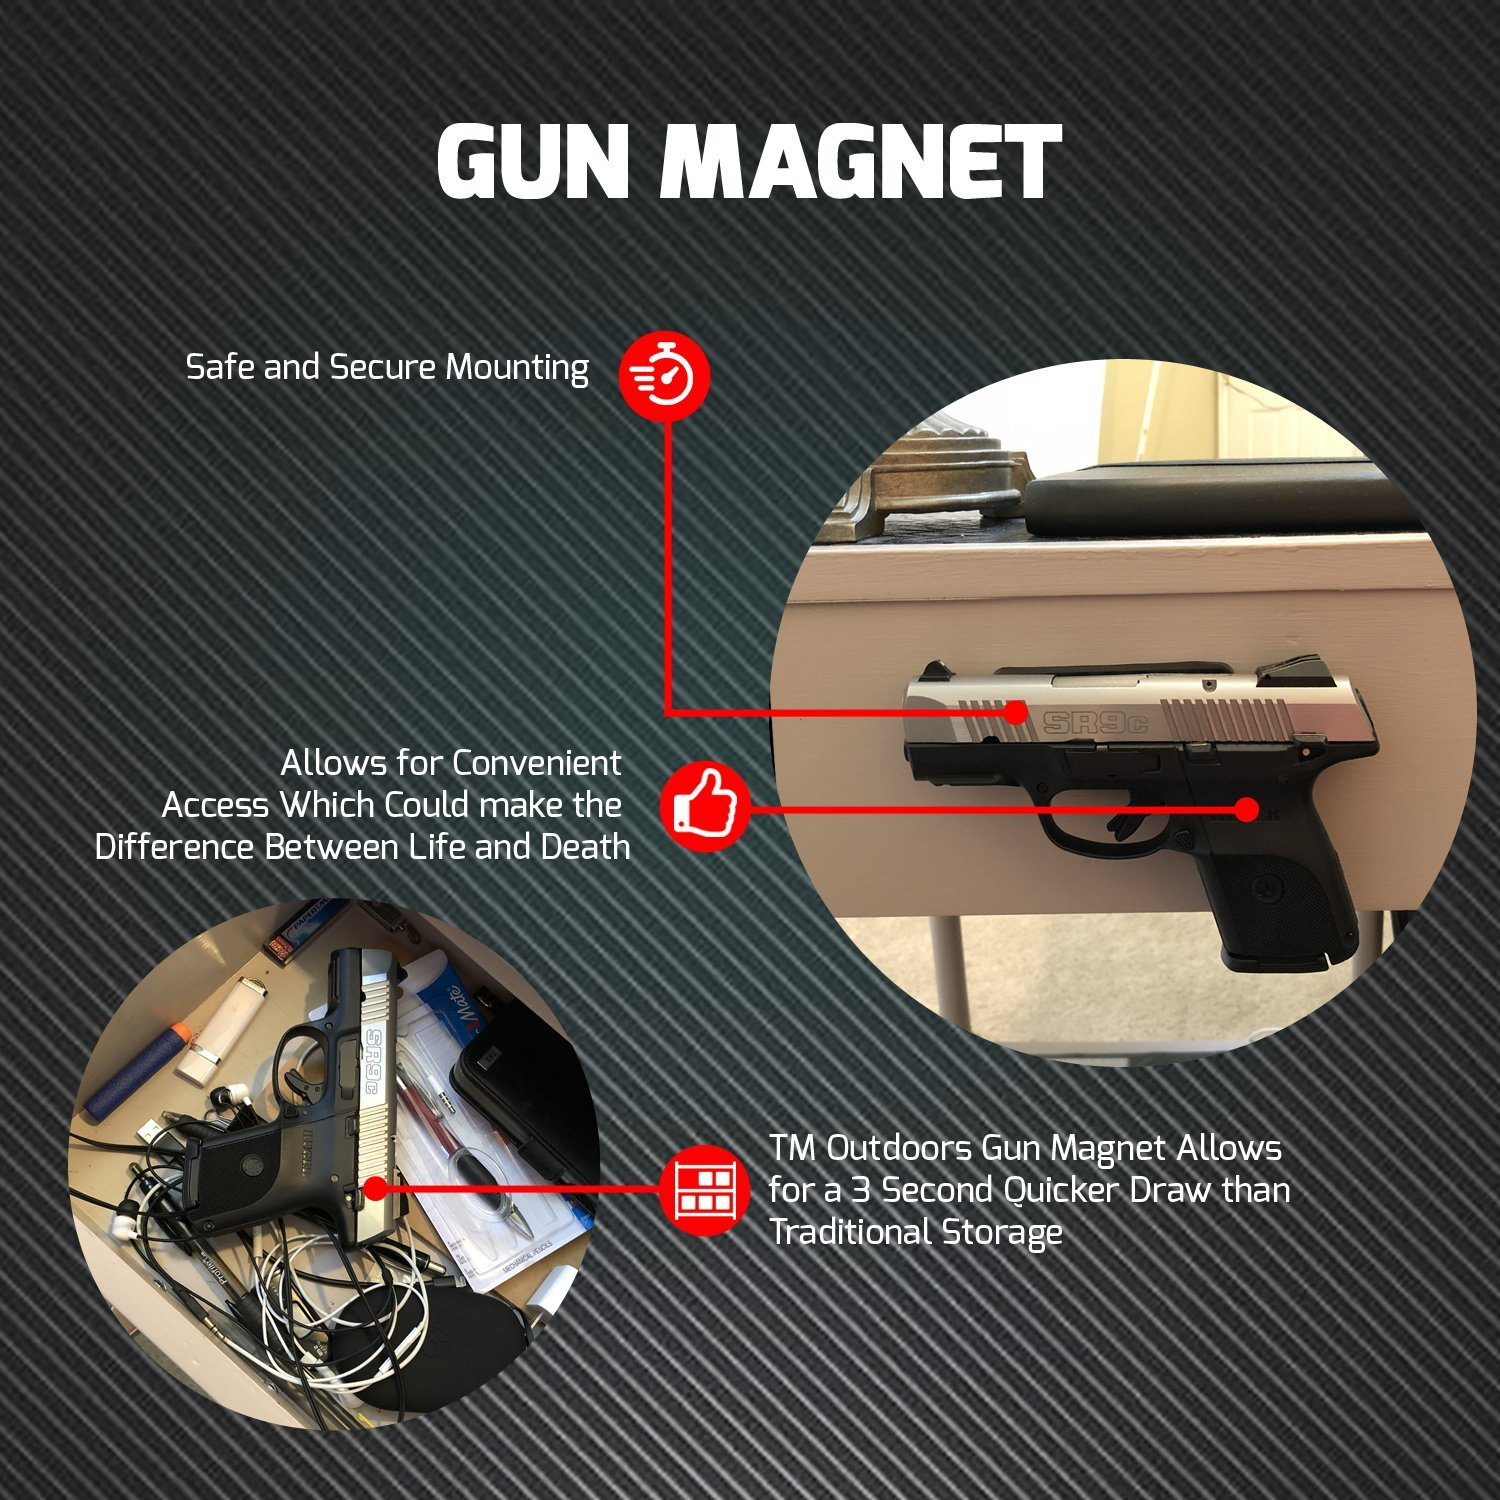 TM Outdoors Ultra-Powerful Ultra-Strong Hold Gun Magnet -Gun Accessory -Convenient and Sturdy Gun Storage  Organizer on Any Surface -Light to Heavy Gun Holder Up To 43 Pounds by TM Outdoors (Image #2)